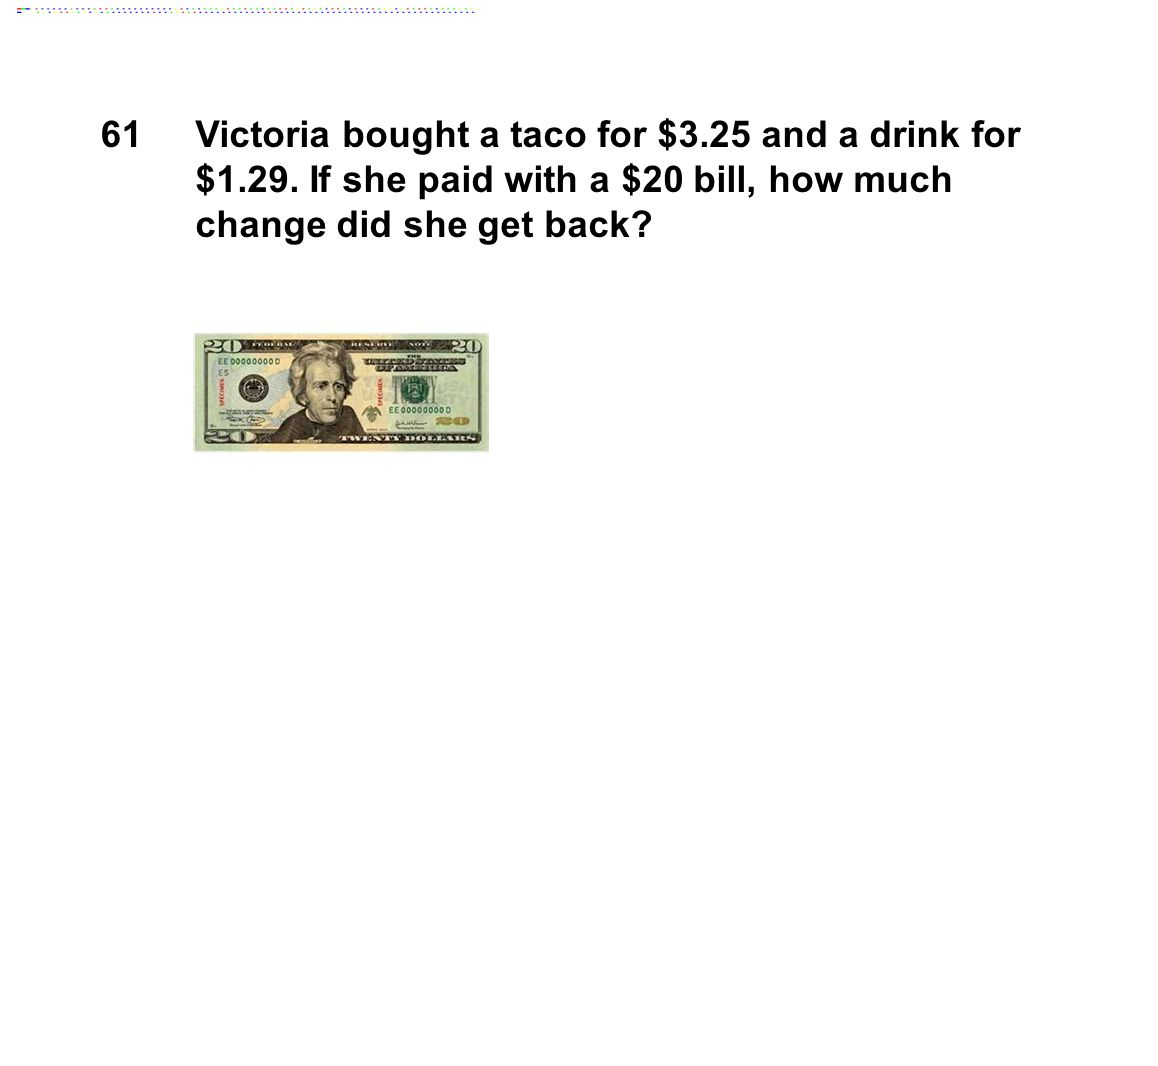 61Victoria bought a taco for $3.25 and a drink for $1.29.